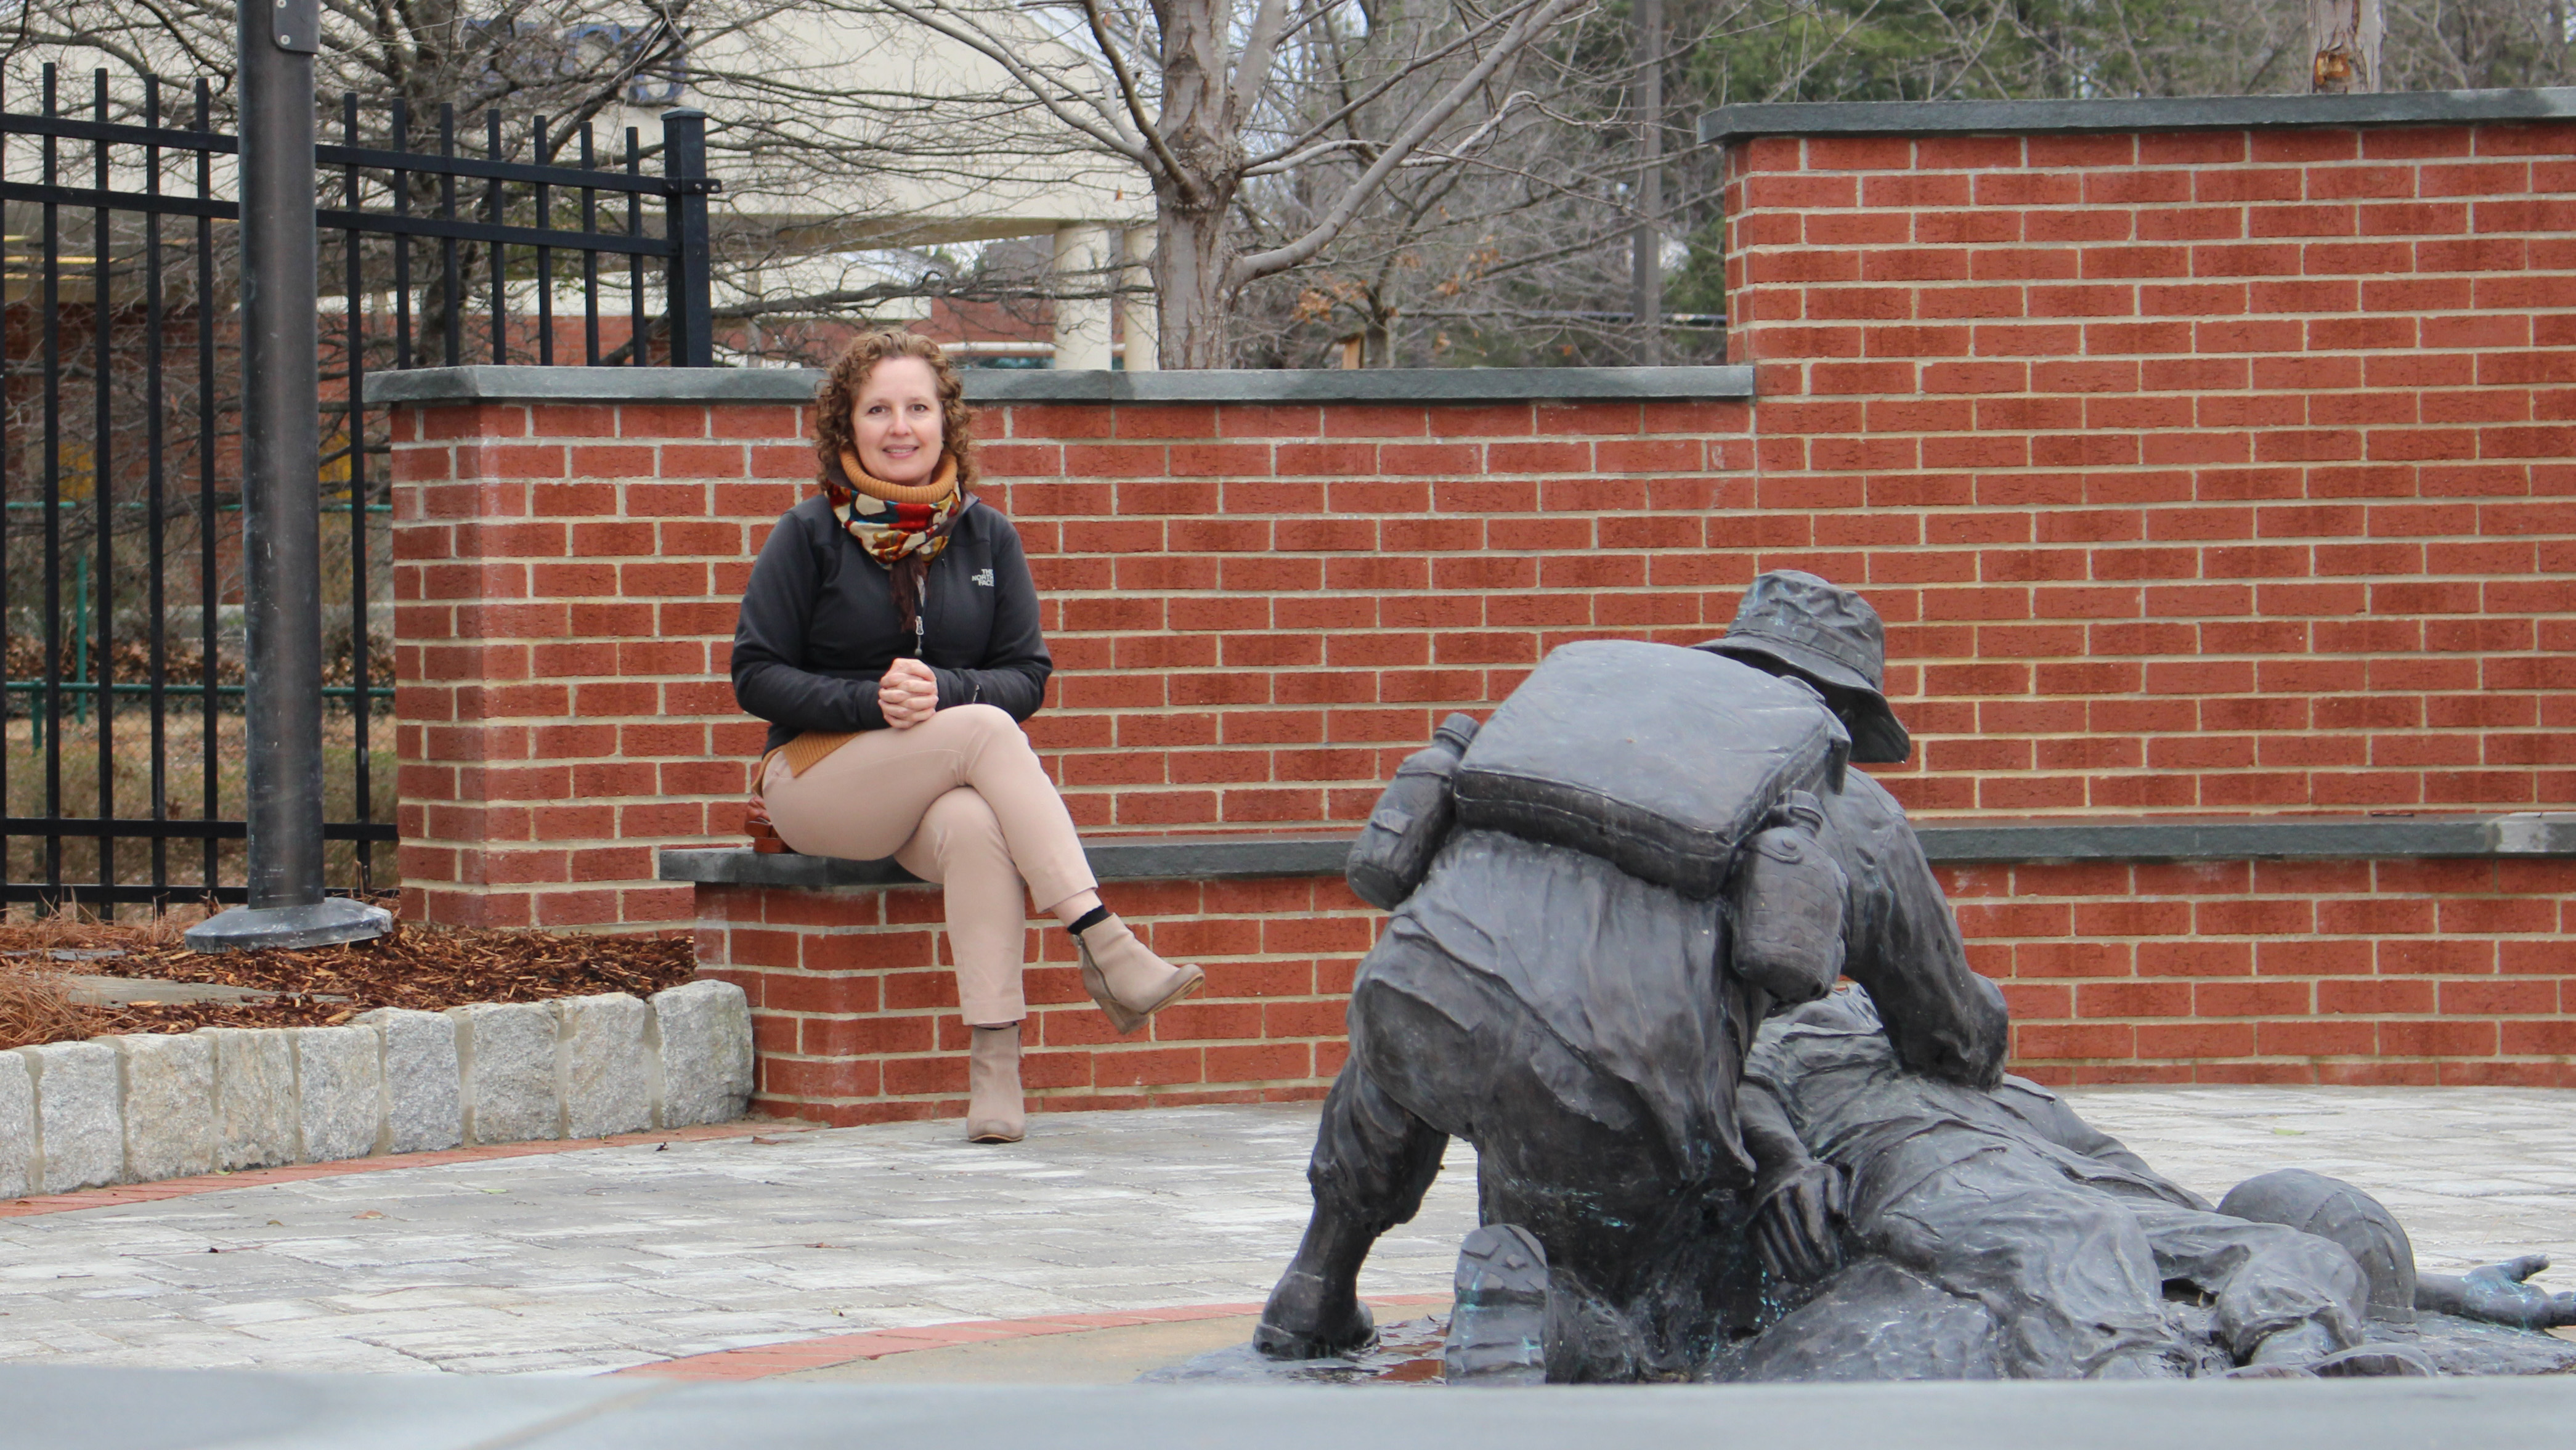 Julieta Sherk seated in a patio. In the foreground: a statue of a medic aiding a wounded soldier.